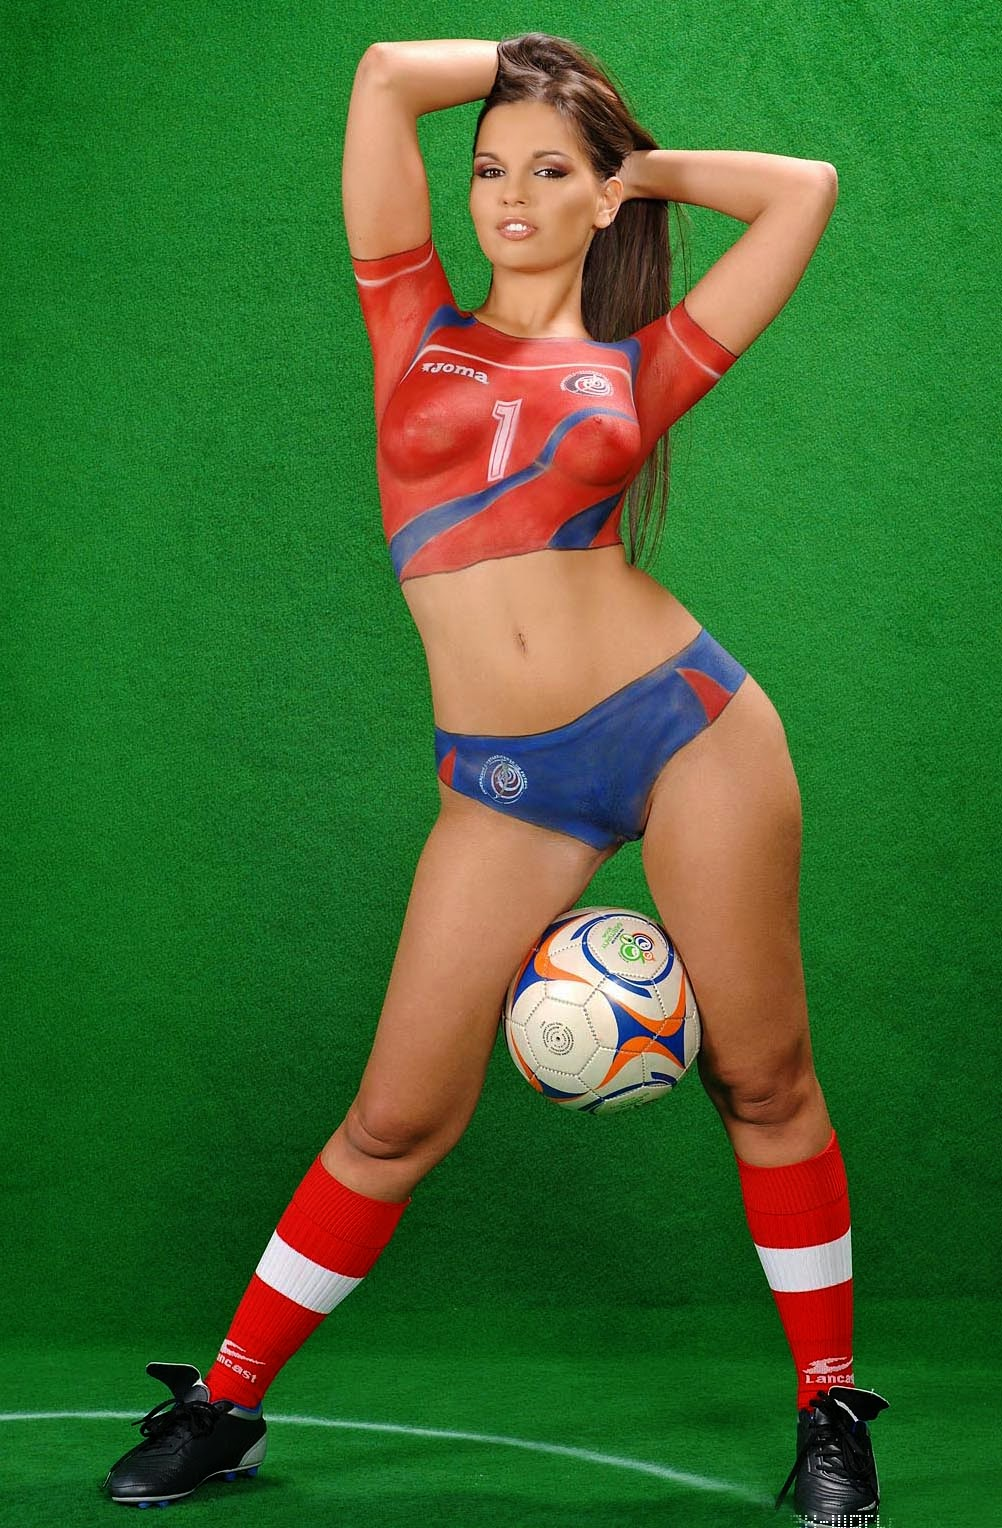 Have Football body paint nude